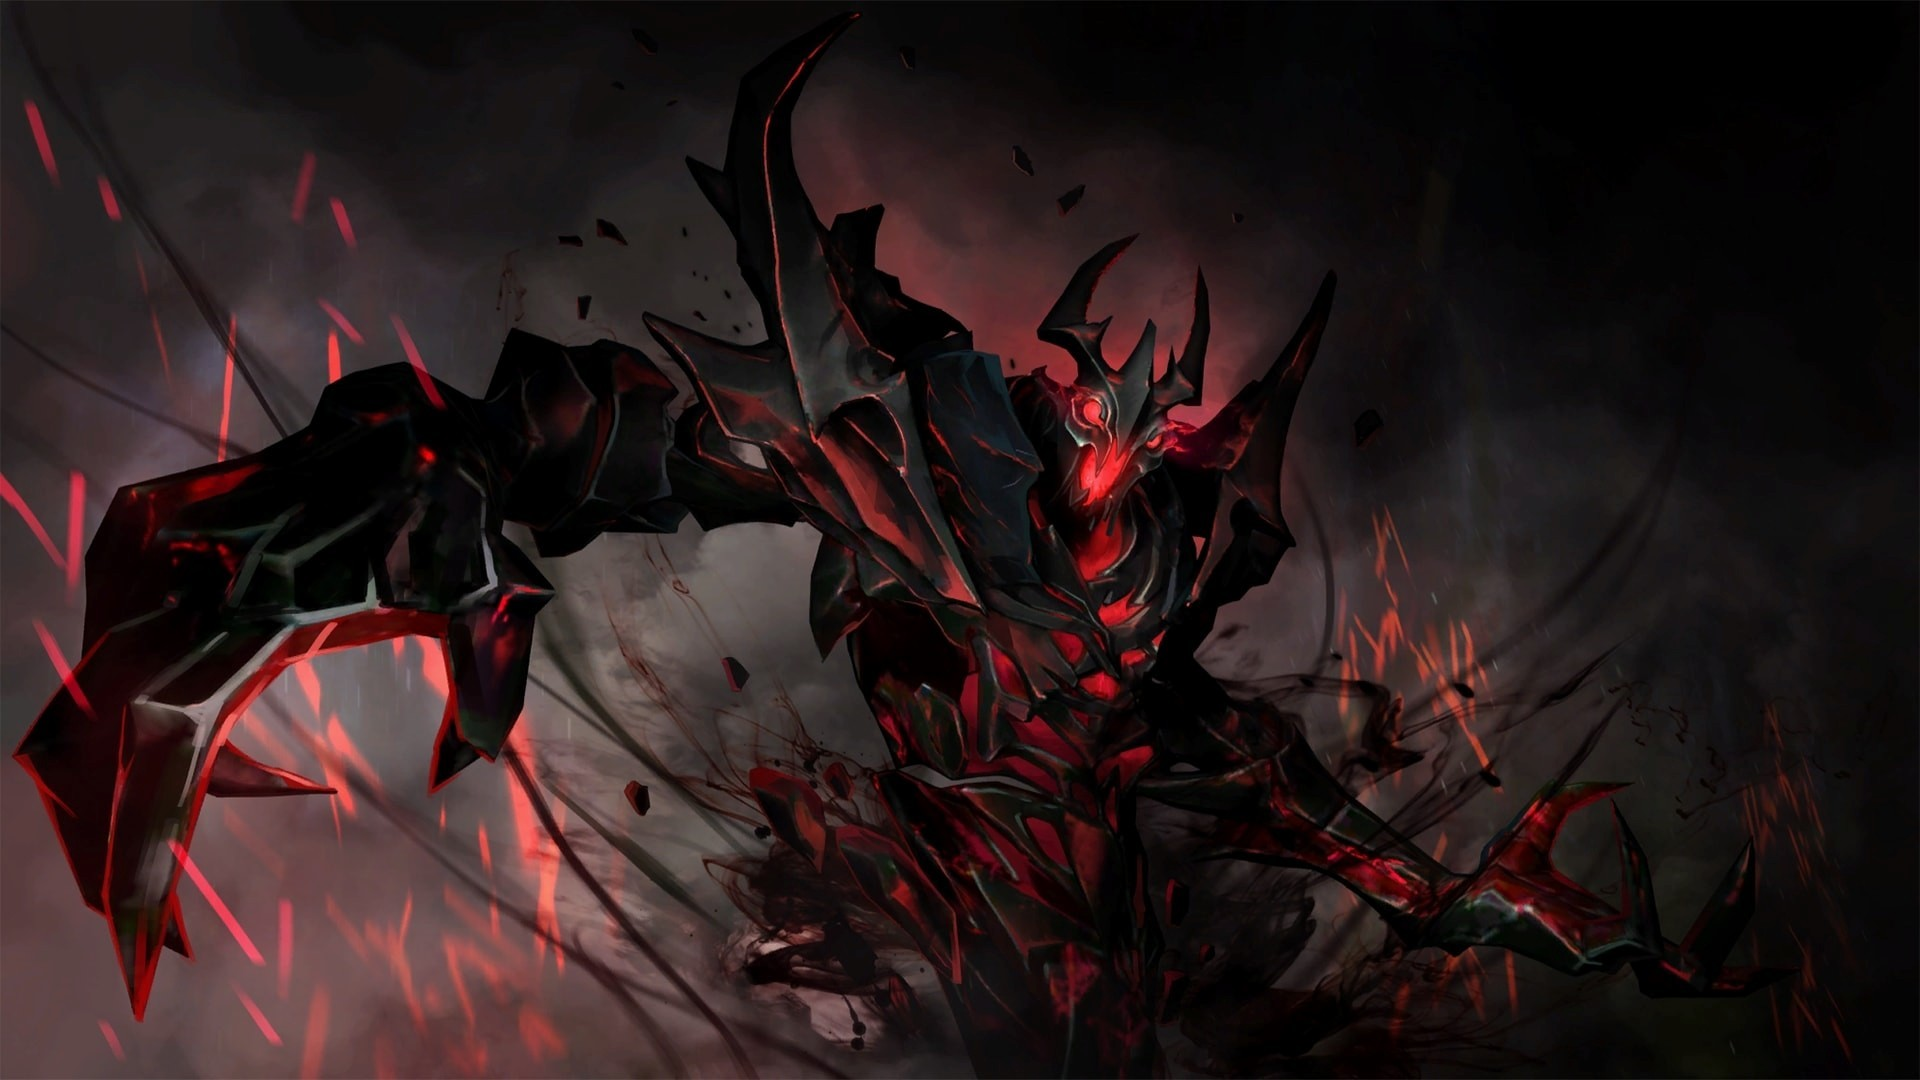 1920x1080 Dota 2 Wallpaper for Pc Shadow Fiend Awesome Luxury Elegant Best Of  Beautiful Fresh Inspirational Lovely